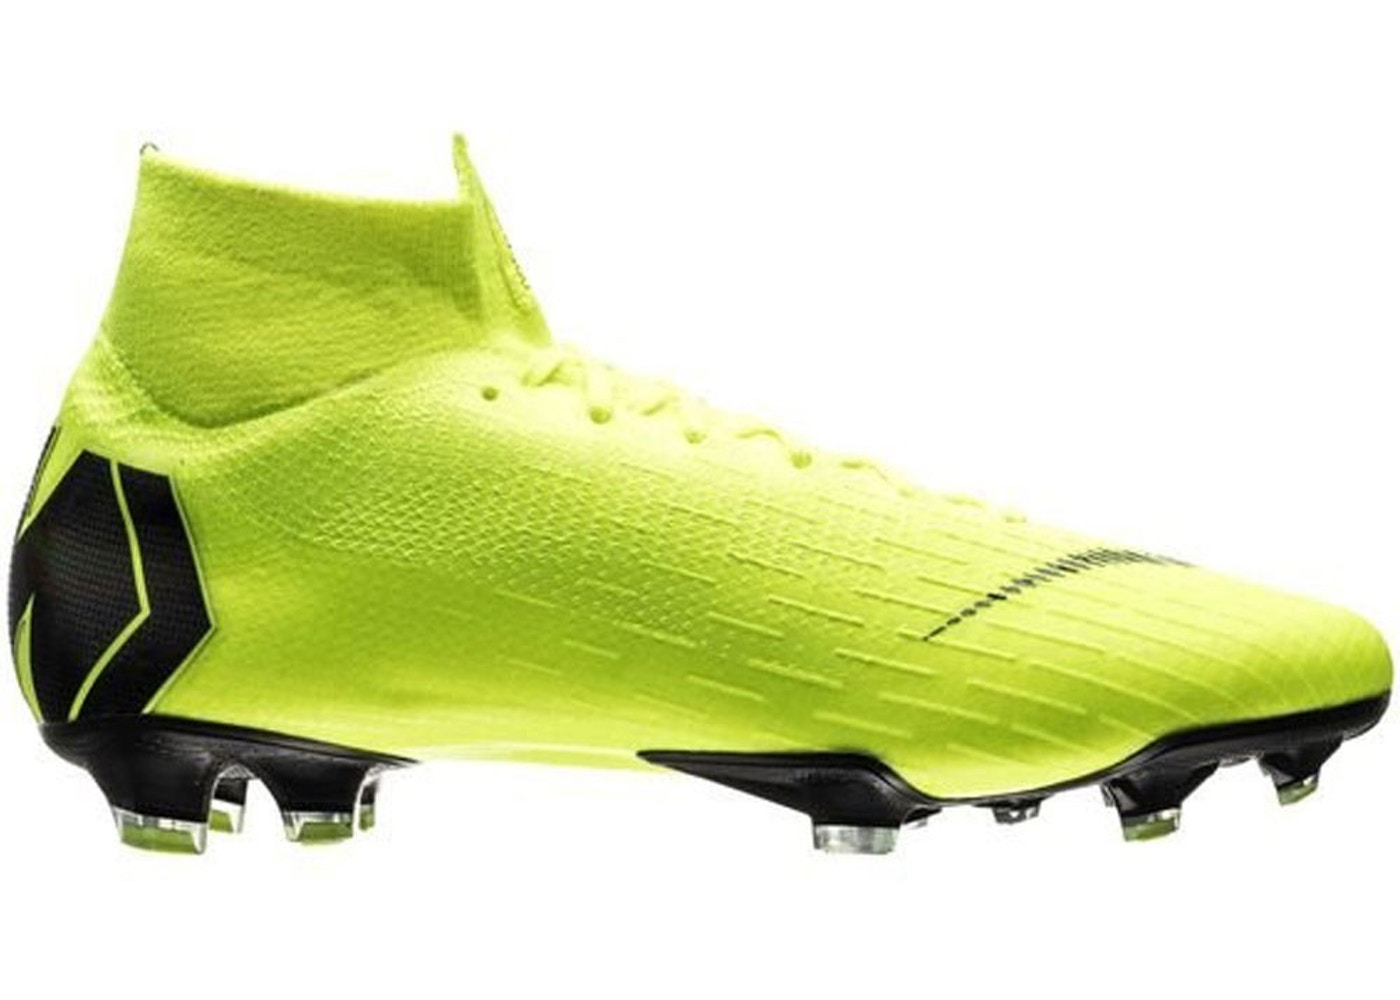 100% authentic 507a4 ab78a Nike Mercurial Superfly 6 Elite FG Volt